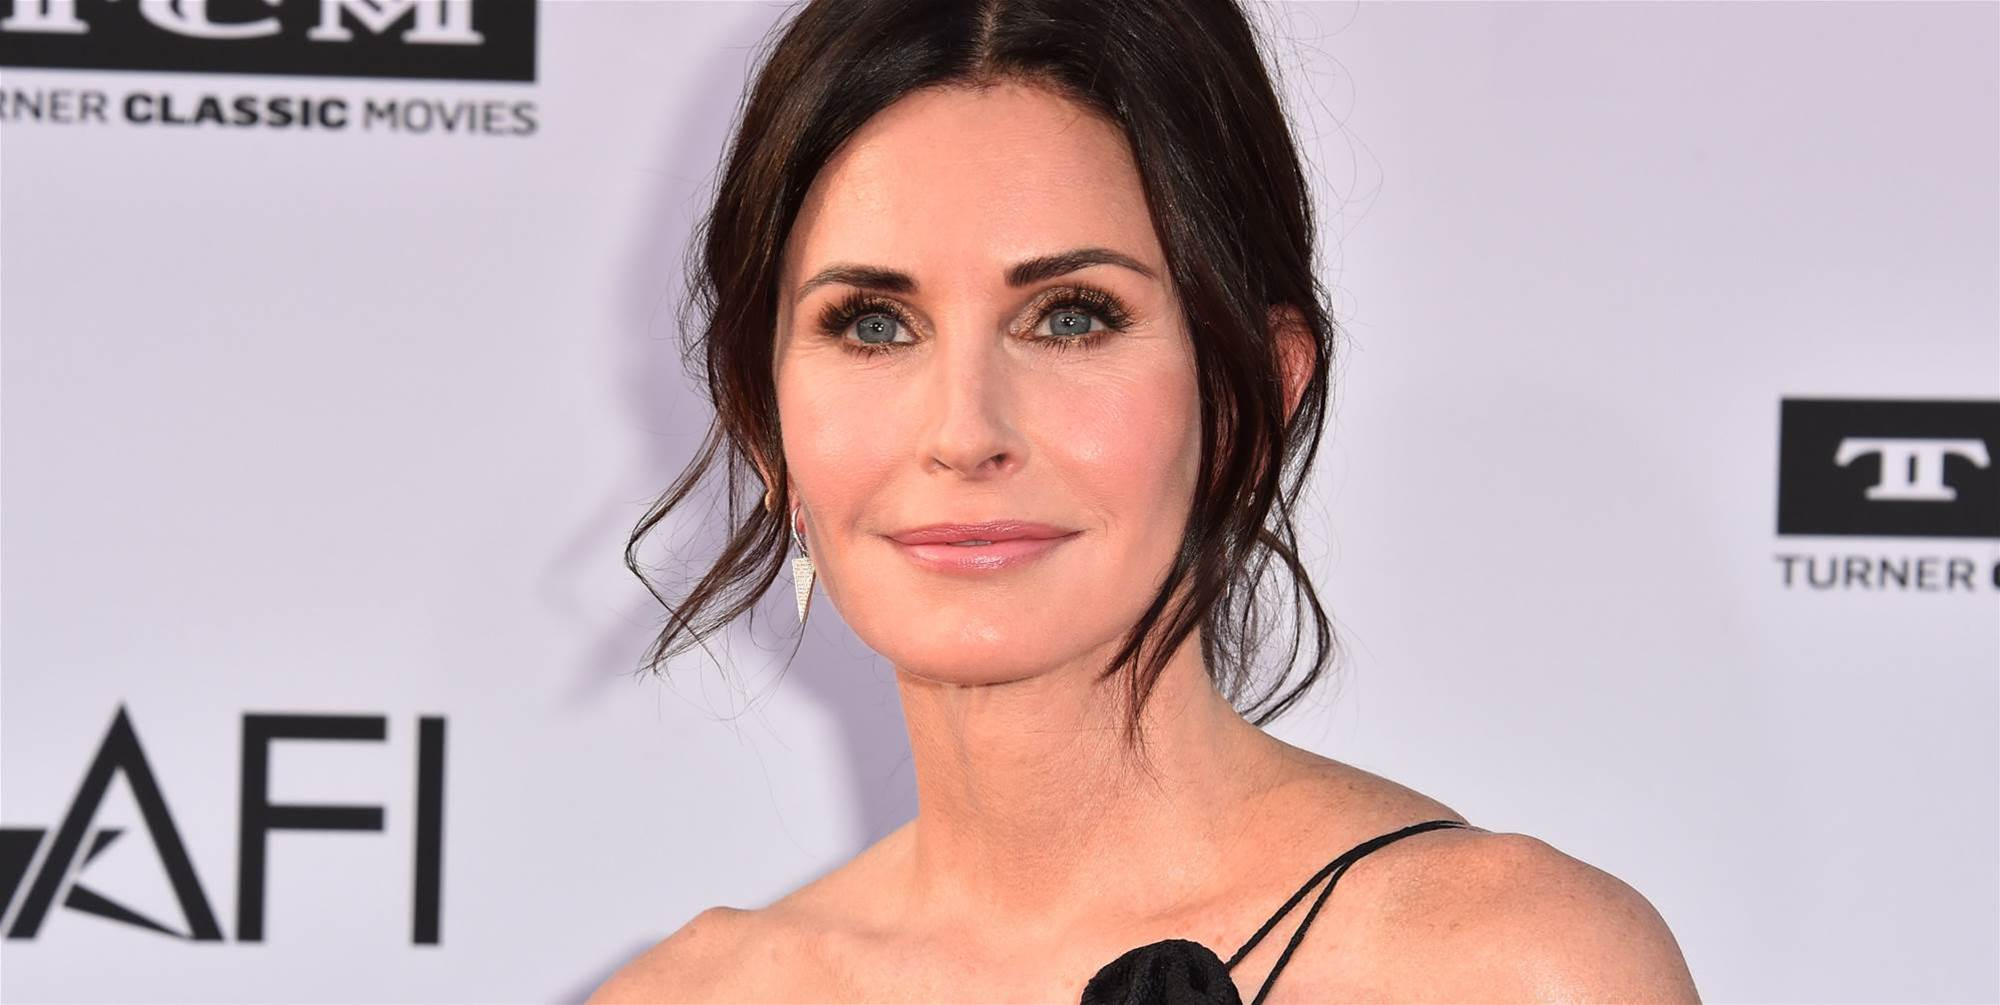 Why Courteney Cox Stopped Using Fillers and Embraced Ageing Naturally